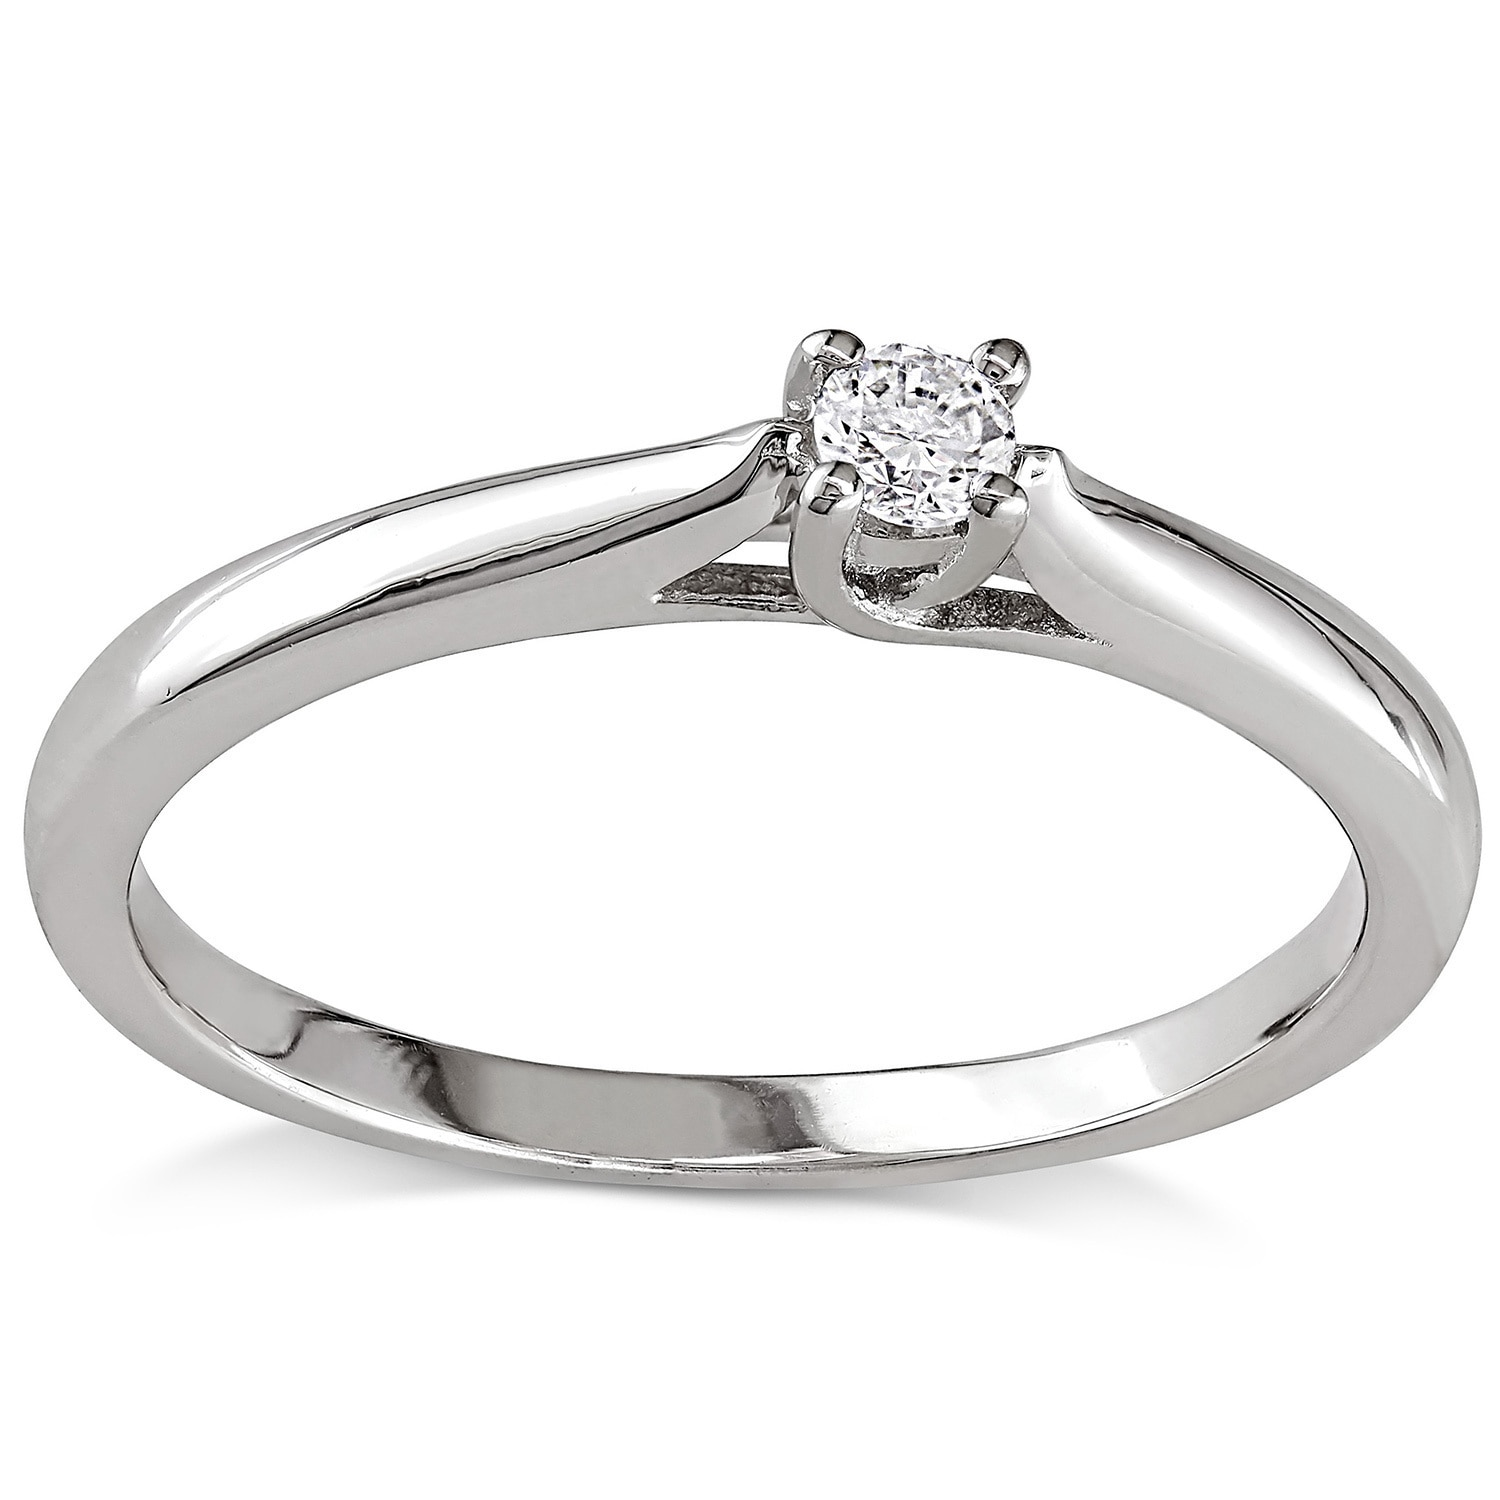 60370141aa508 Miadora Sterling Silver 1/10ct TDW Diamond Solitaire Promise Ring